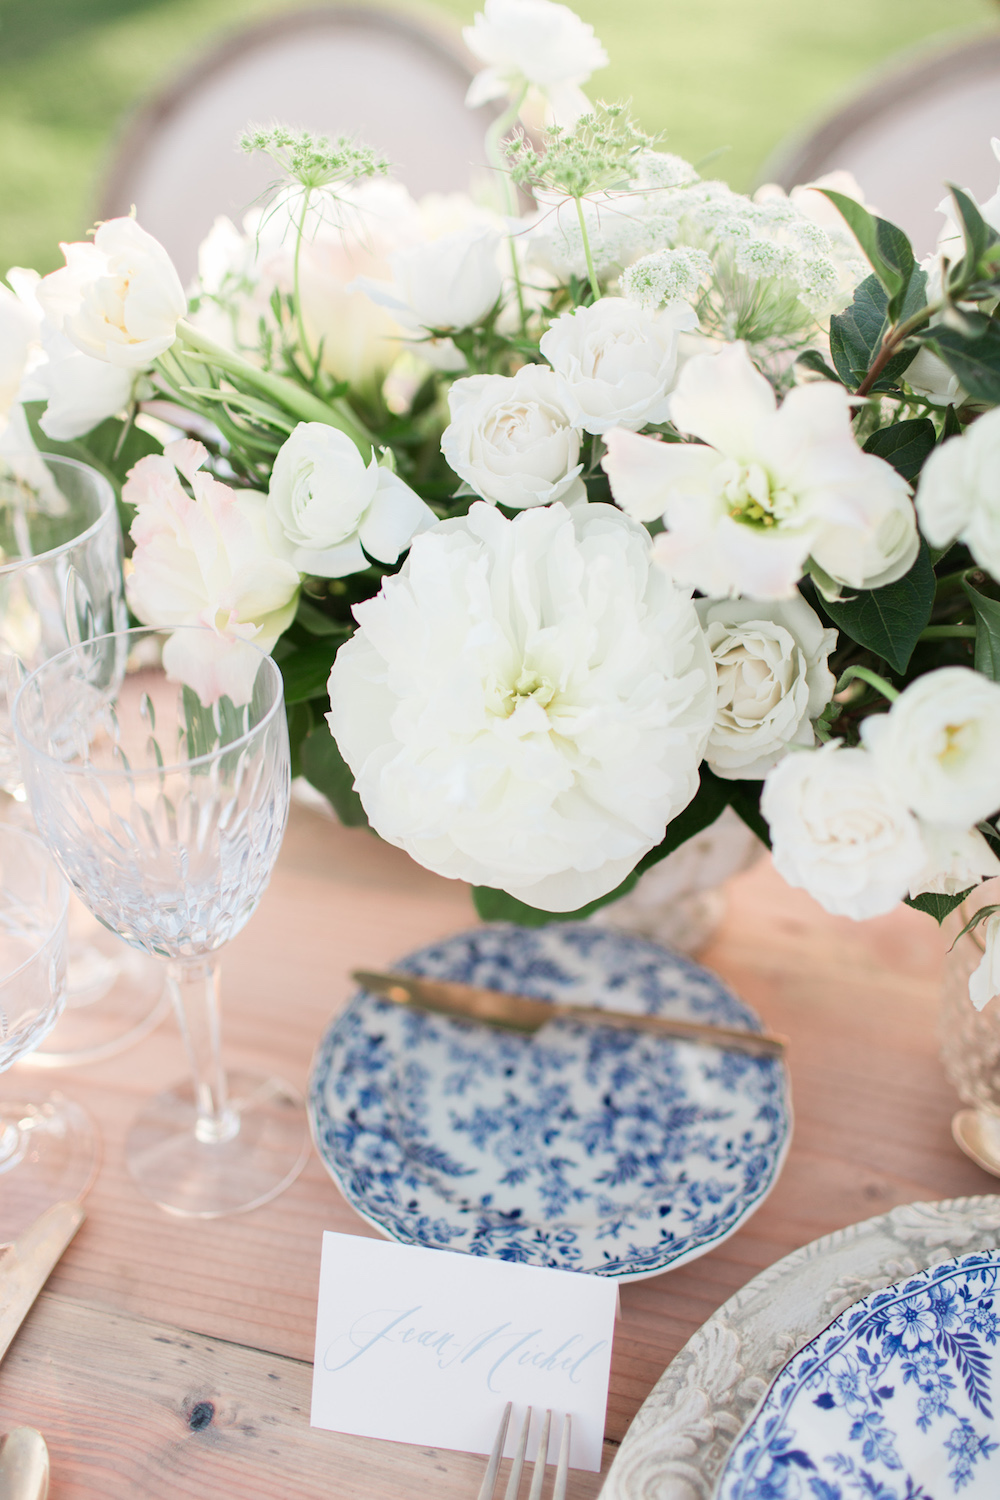 White centerpiece with blue chinoiserie place settings| Rancho Valencia Weddings | Rancho Santa Fe | Compass Floral | Wedding Florist in San Diego and Southern California | Cavin Elizabeth Photography